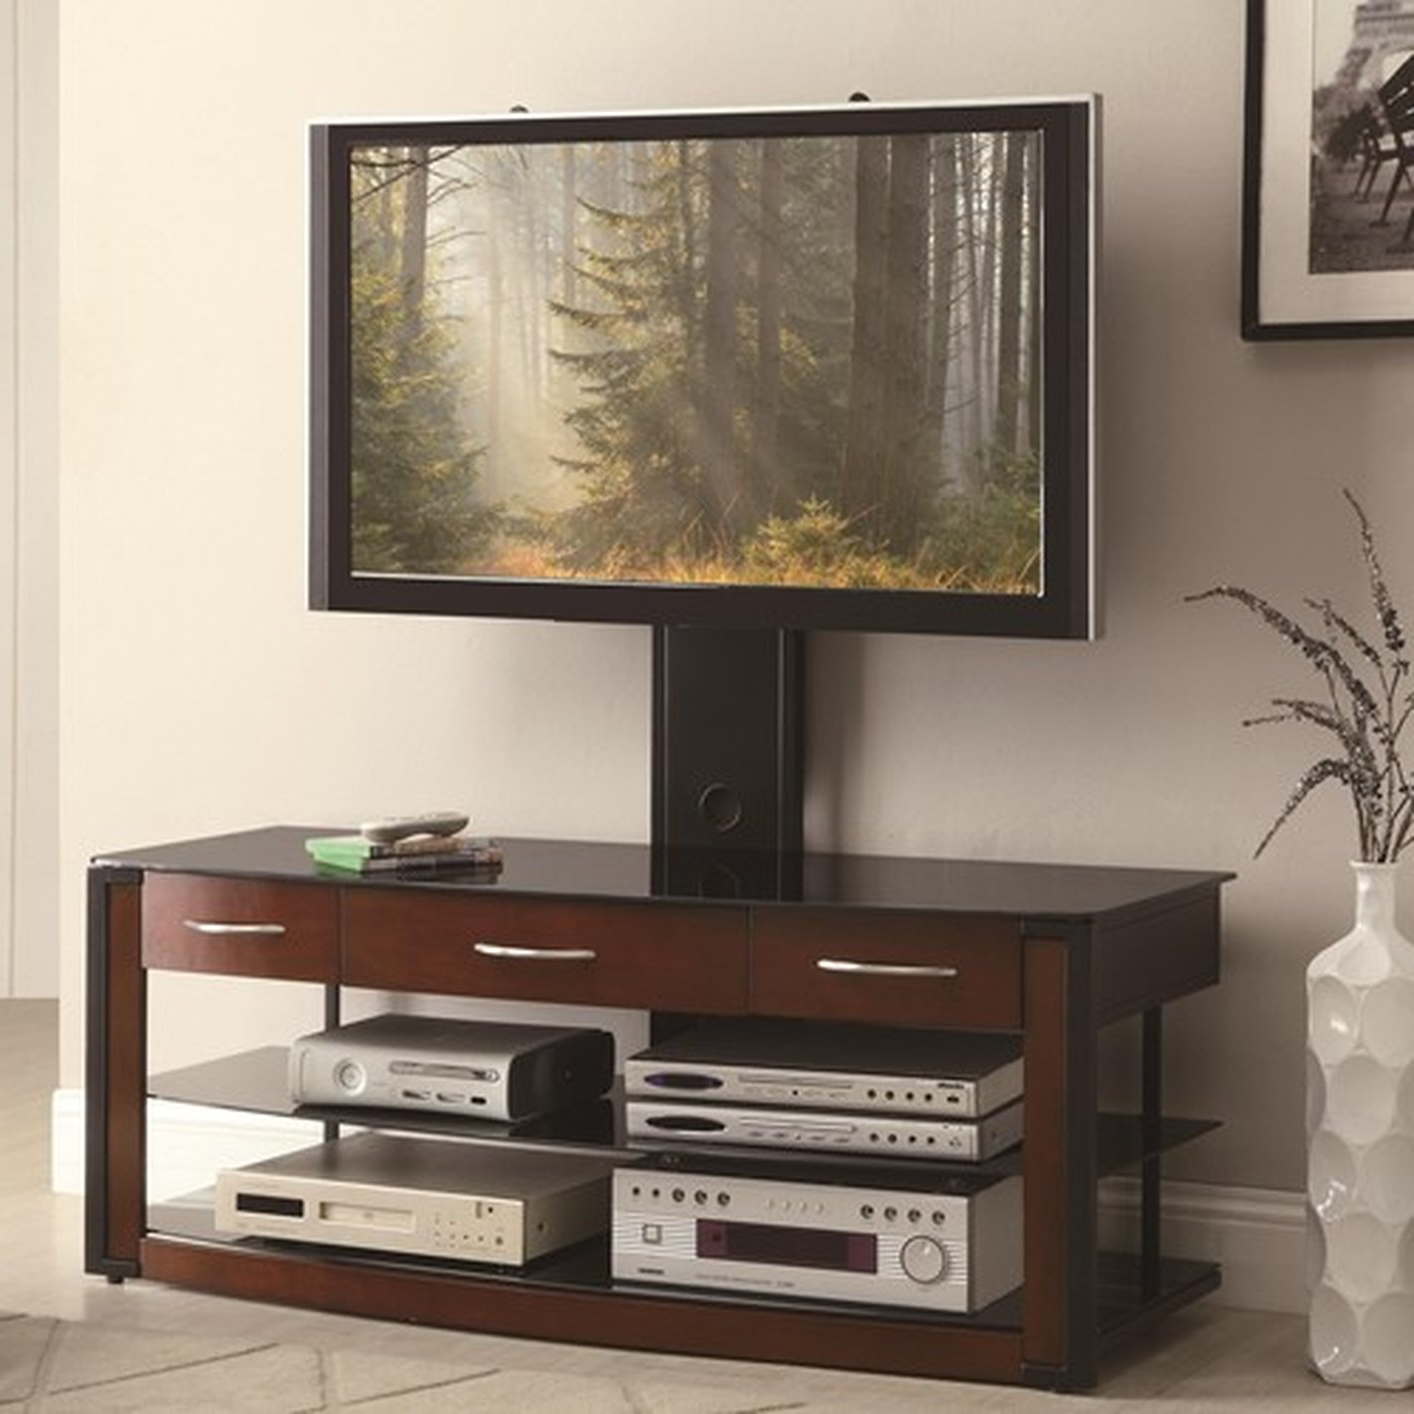 Most Popular Wood Tv Stands With Glass Top Pertaining To Brown Wood Tv Stand – Steal A Sofa Furniture Outlet Los Angeles Ca (View 9 of 20)